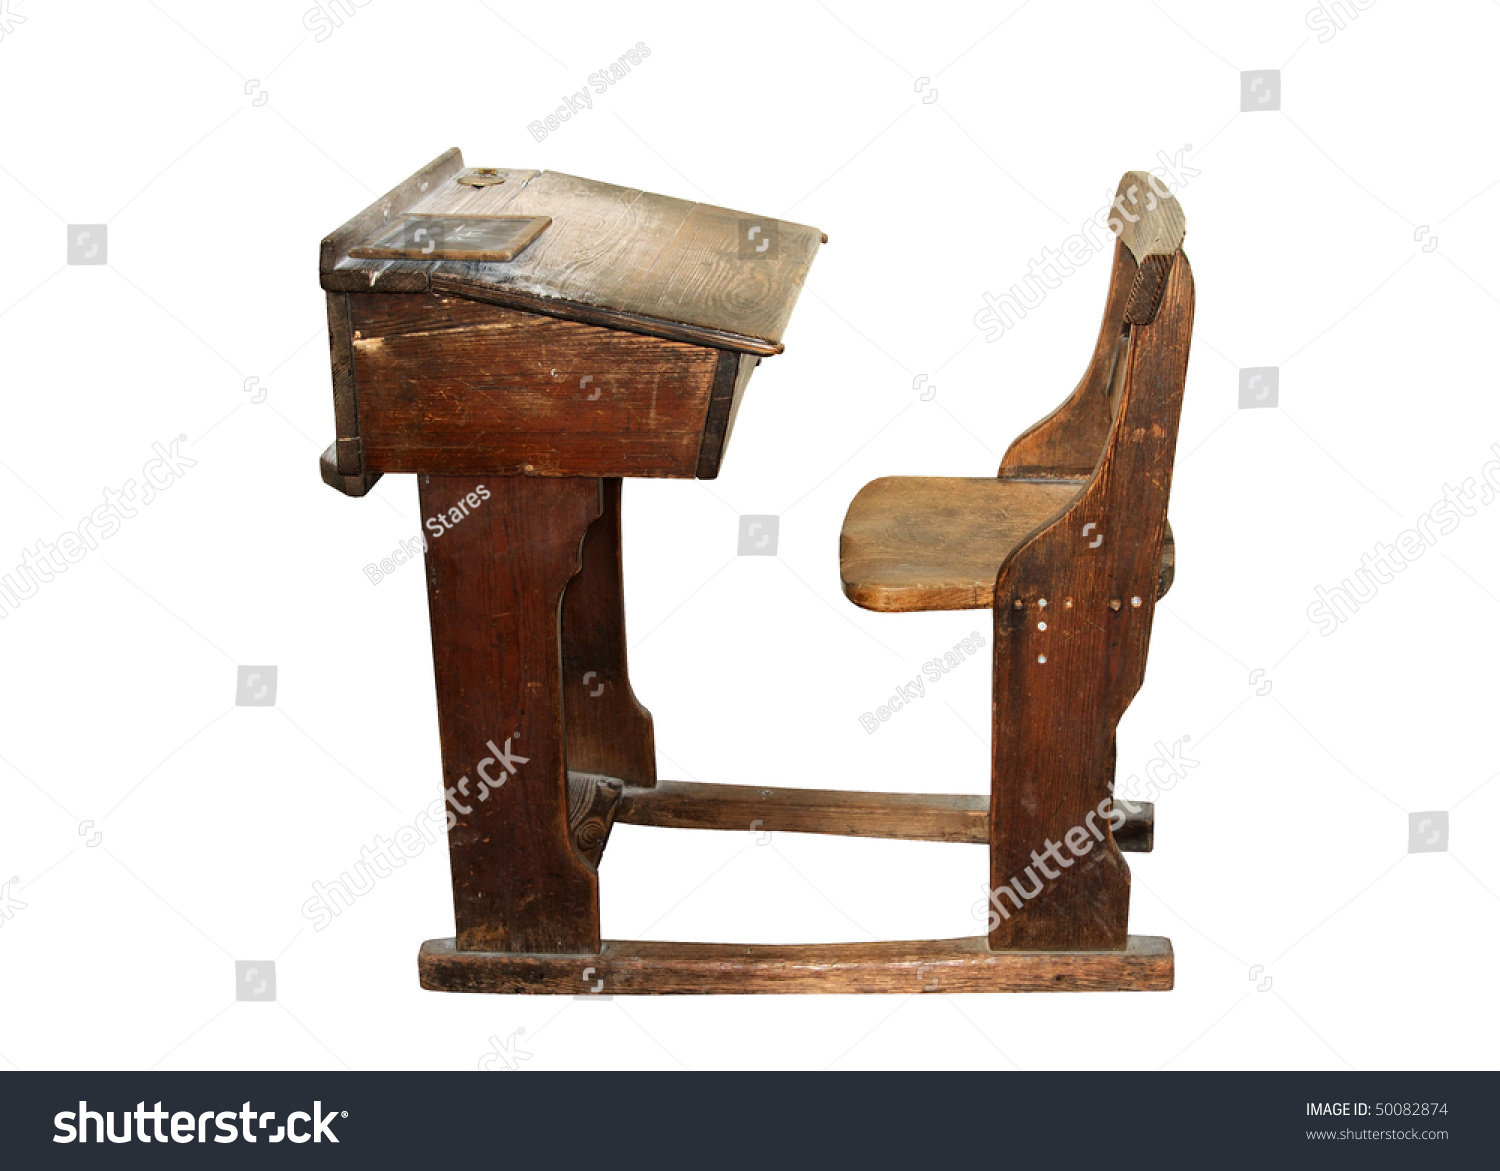 Vintage Wooden School Desk Chair Isolated Stock Photo